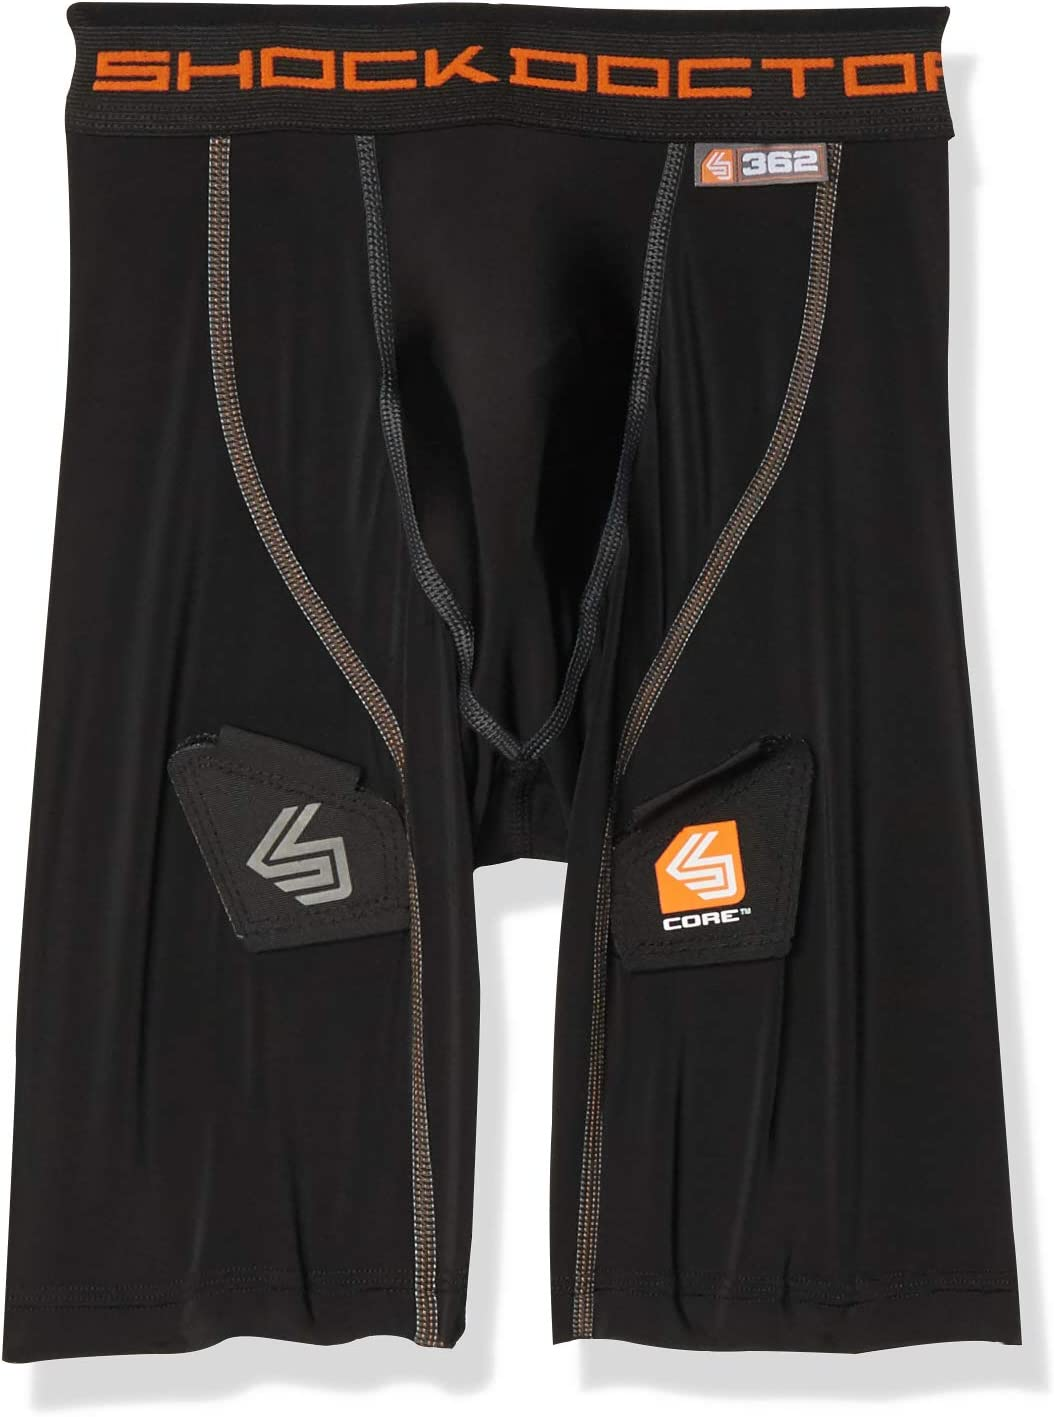 Shock Doctor Compression Shorts with Bio-Flex Supporter Cup Included. Boys,Youth & Adult Men